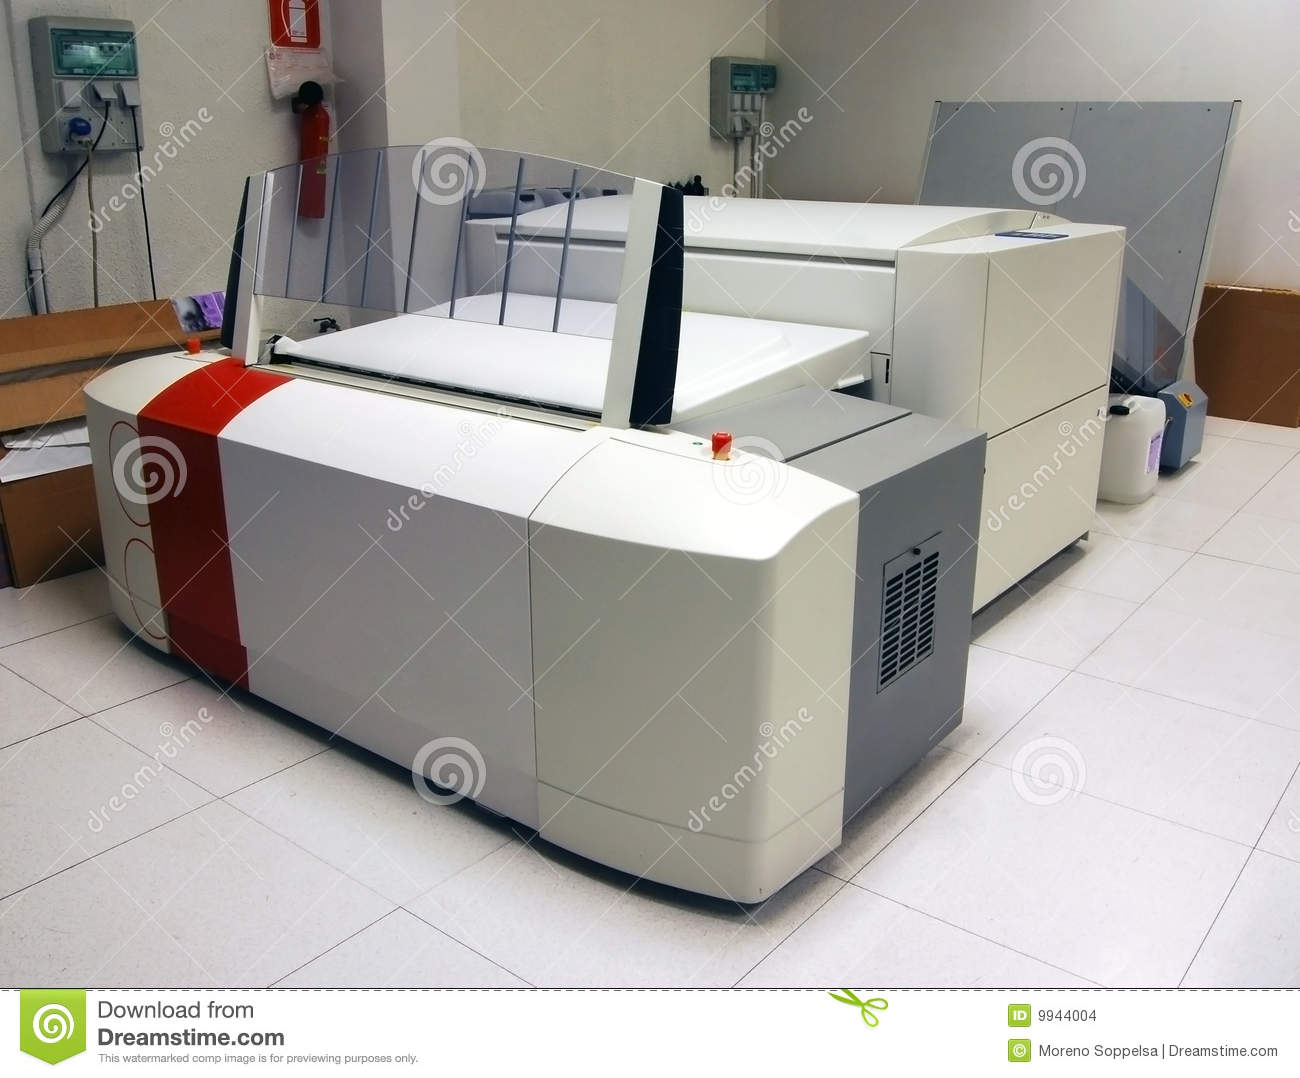 Flasheuse Agfa Ctp AVALON LF THERMAL Machines d'occasion ...  |Ctp